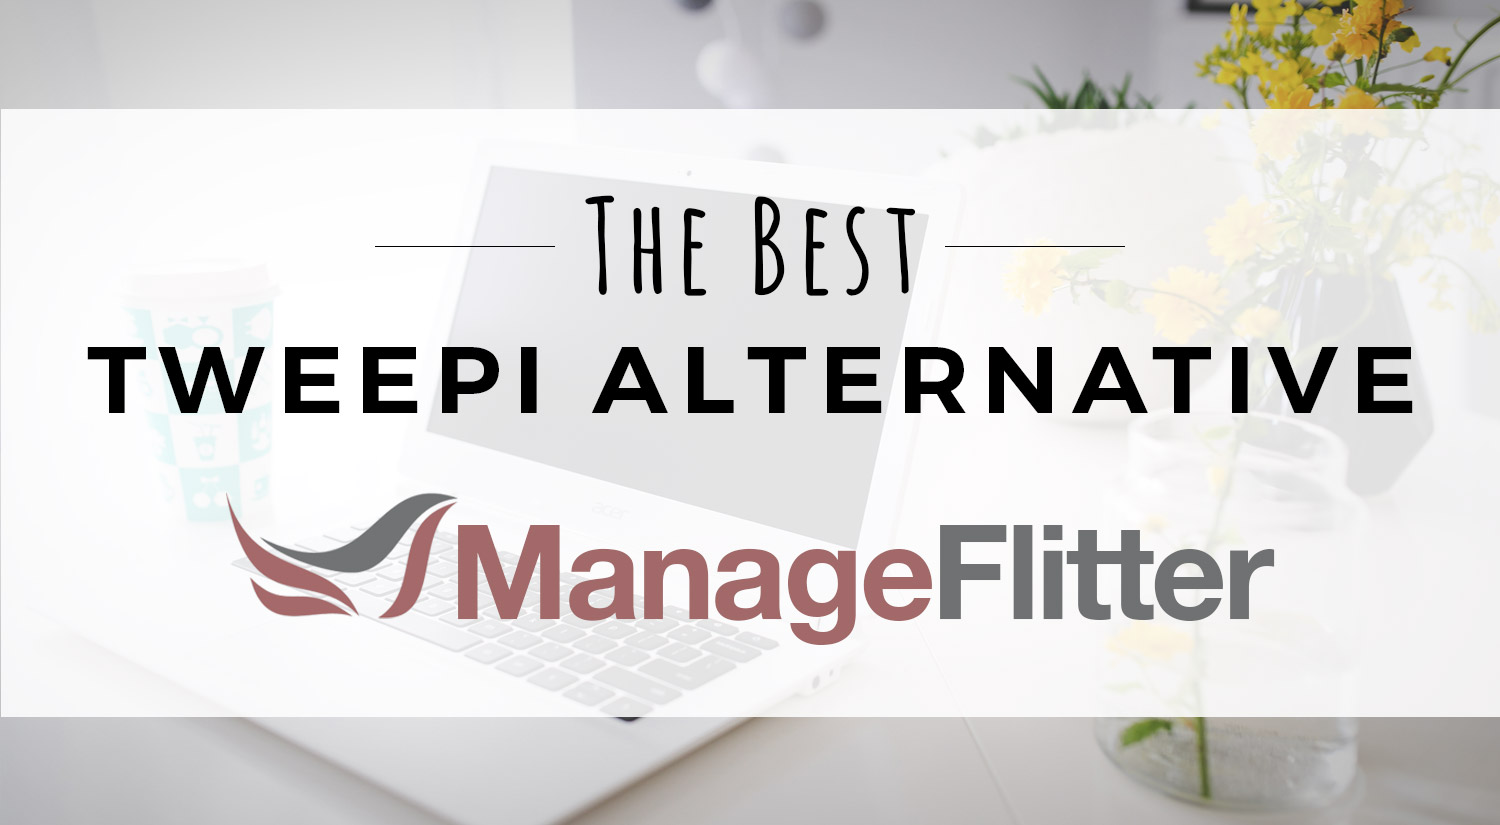 ManageFlitter: The Best Tweepi Alternative